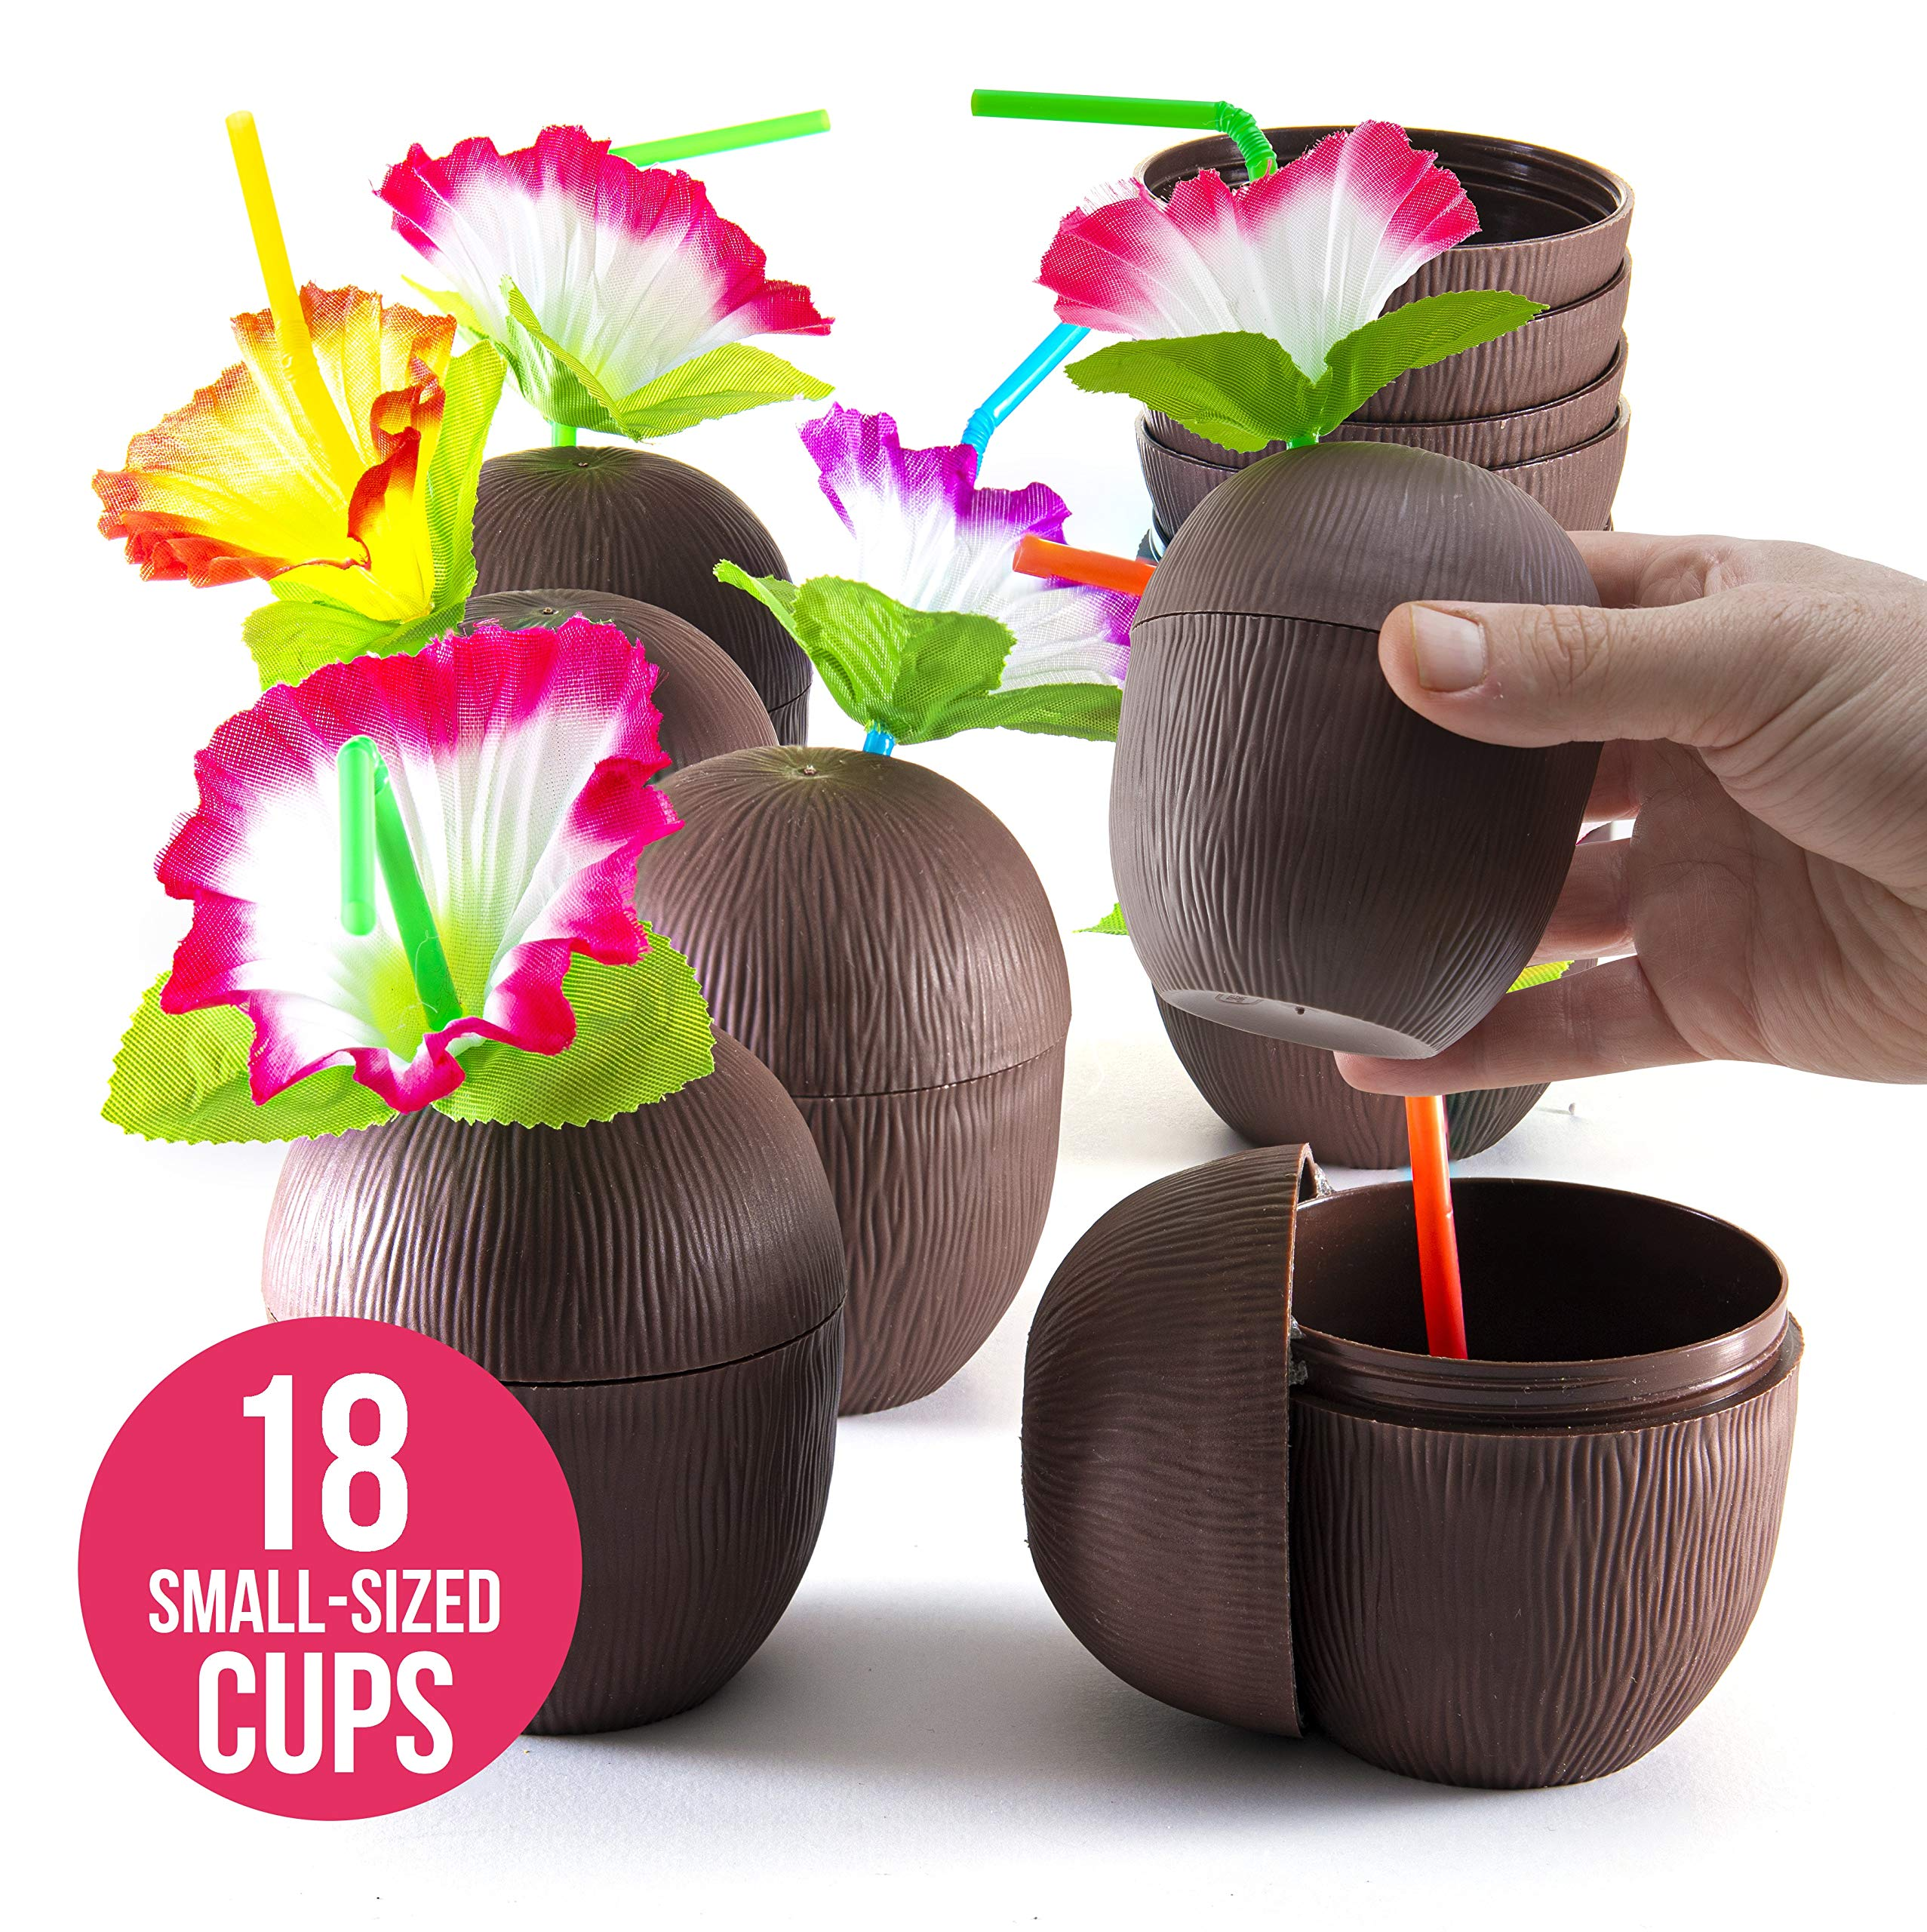 Prextex 18 Pack Mini Coconut Cups for Hawaiian Luau Kids Party with Hibiscus Flower Straws - Tiki and Beach Theme Party Fun Drink or Decoration Cups (250ml, 8.45oz) by PREXTEX